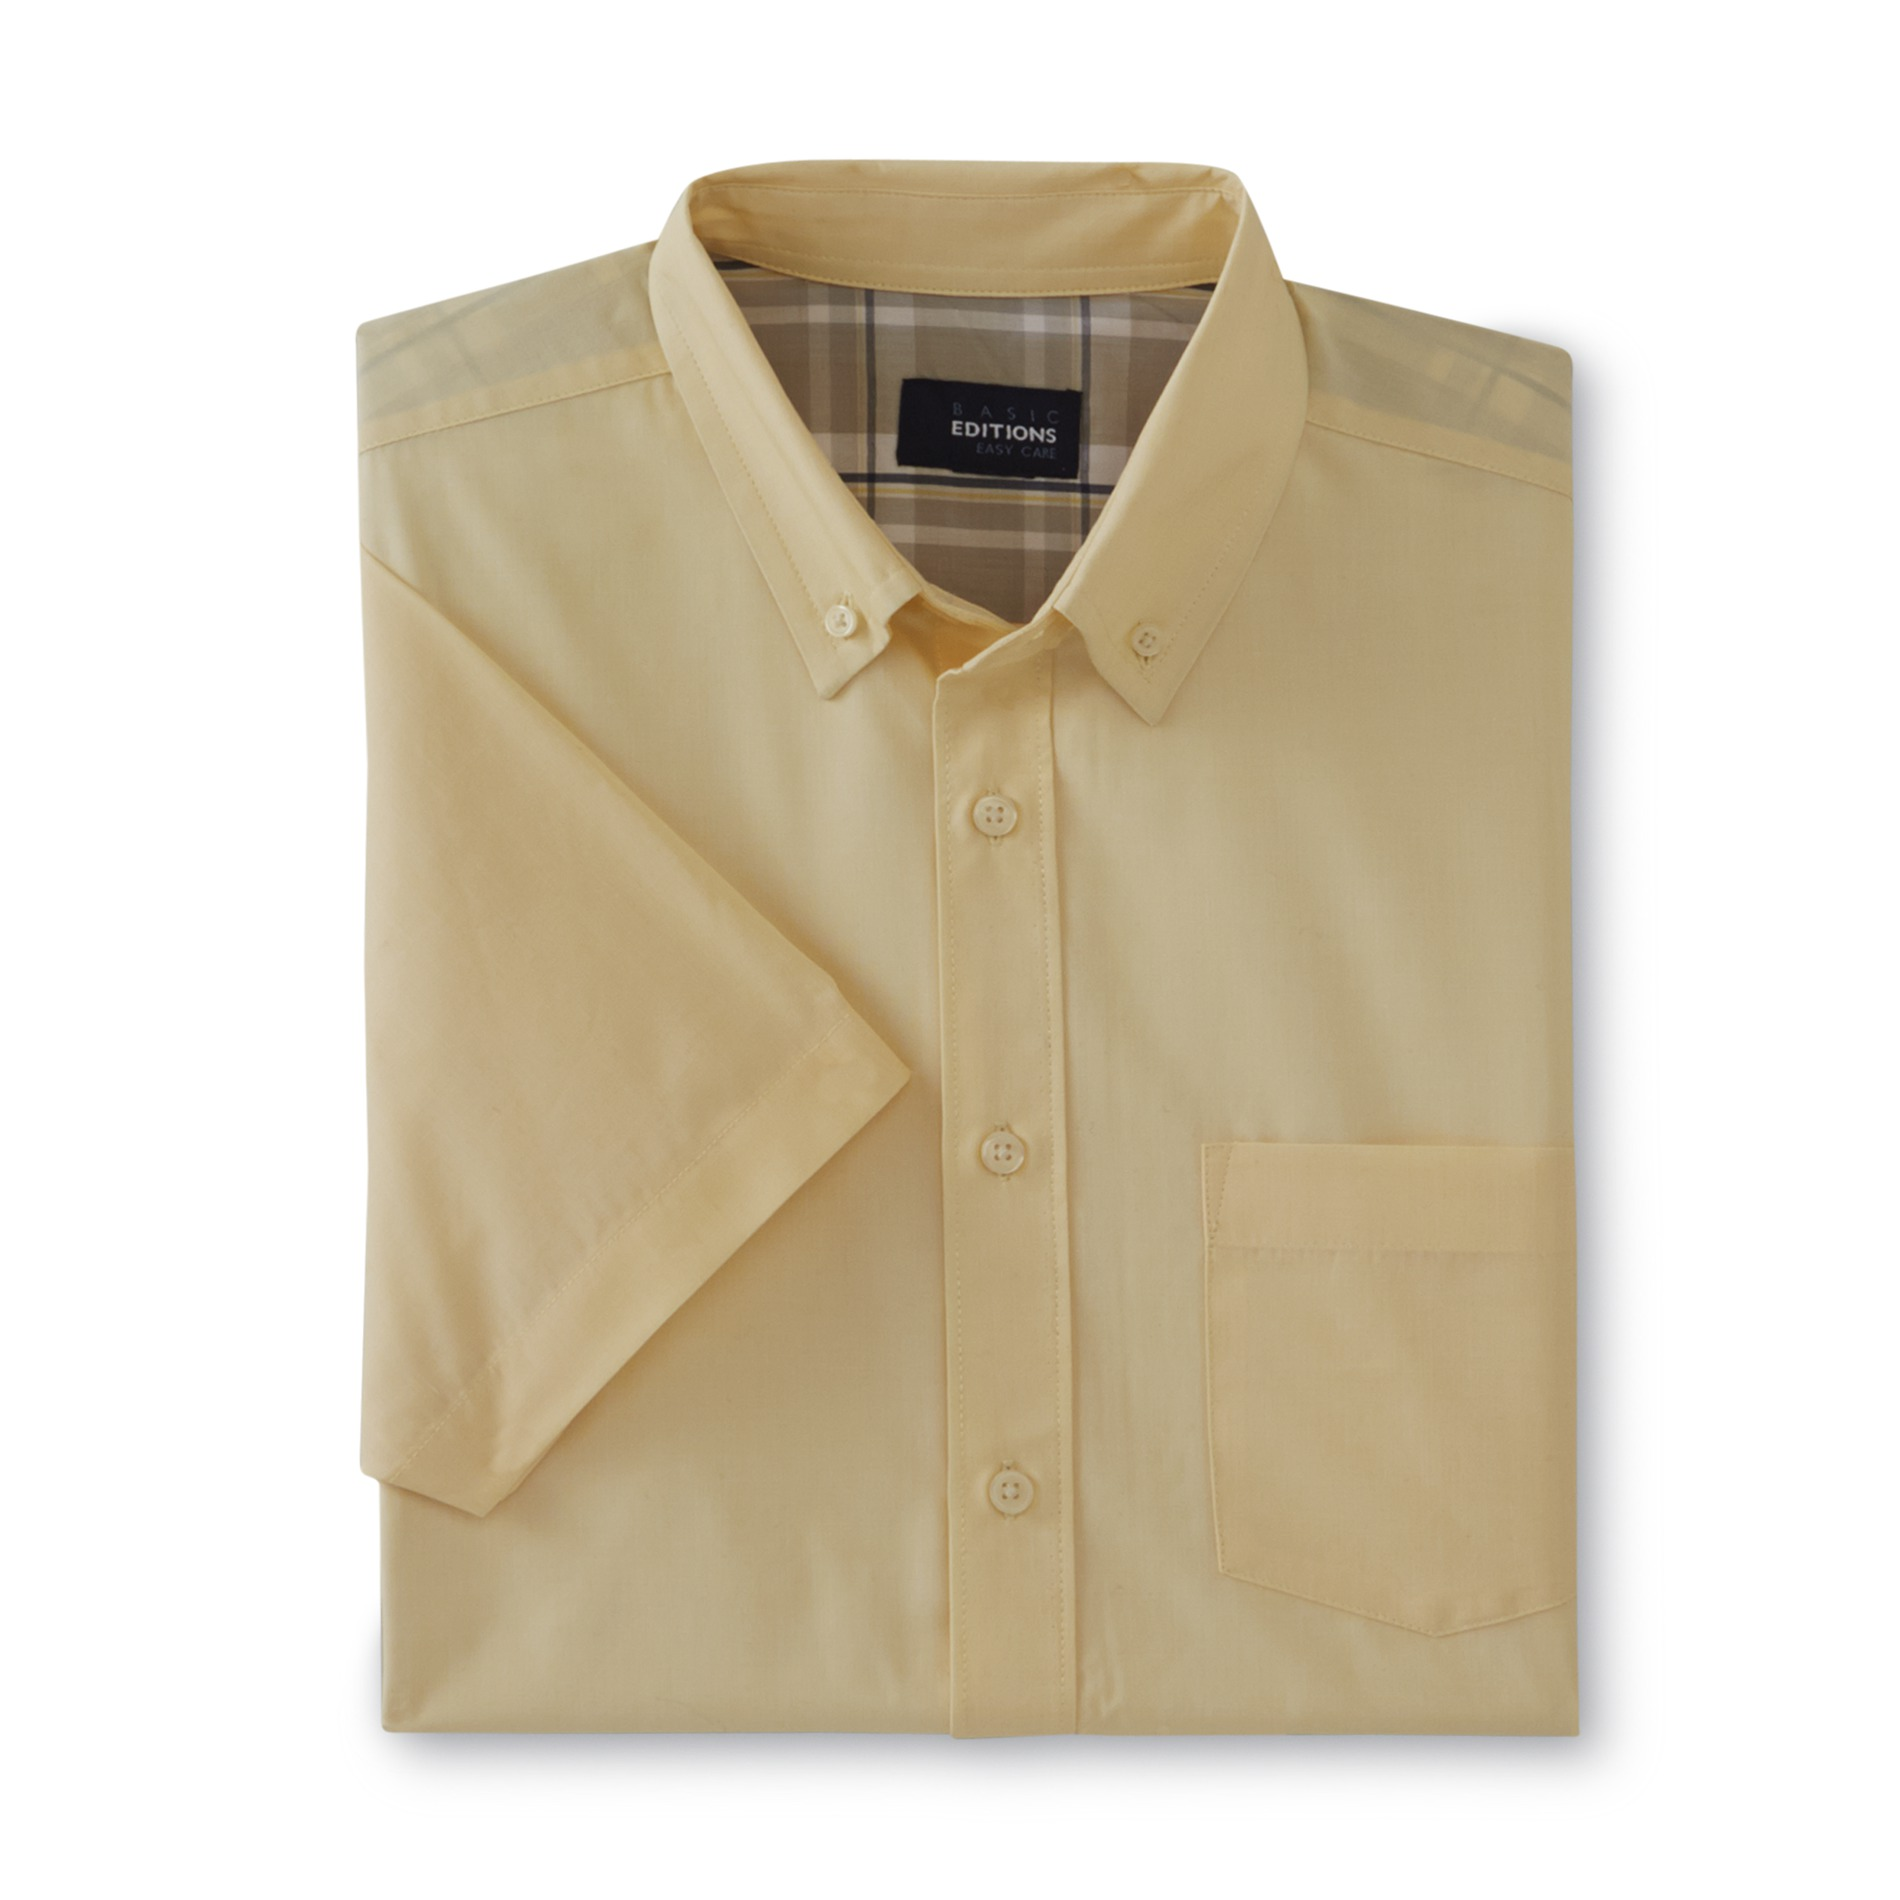 Basic Editions Men's Big & Tall Easy Care Short-Sleeve Dress Shirt